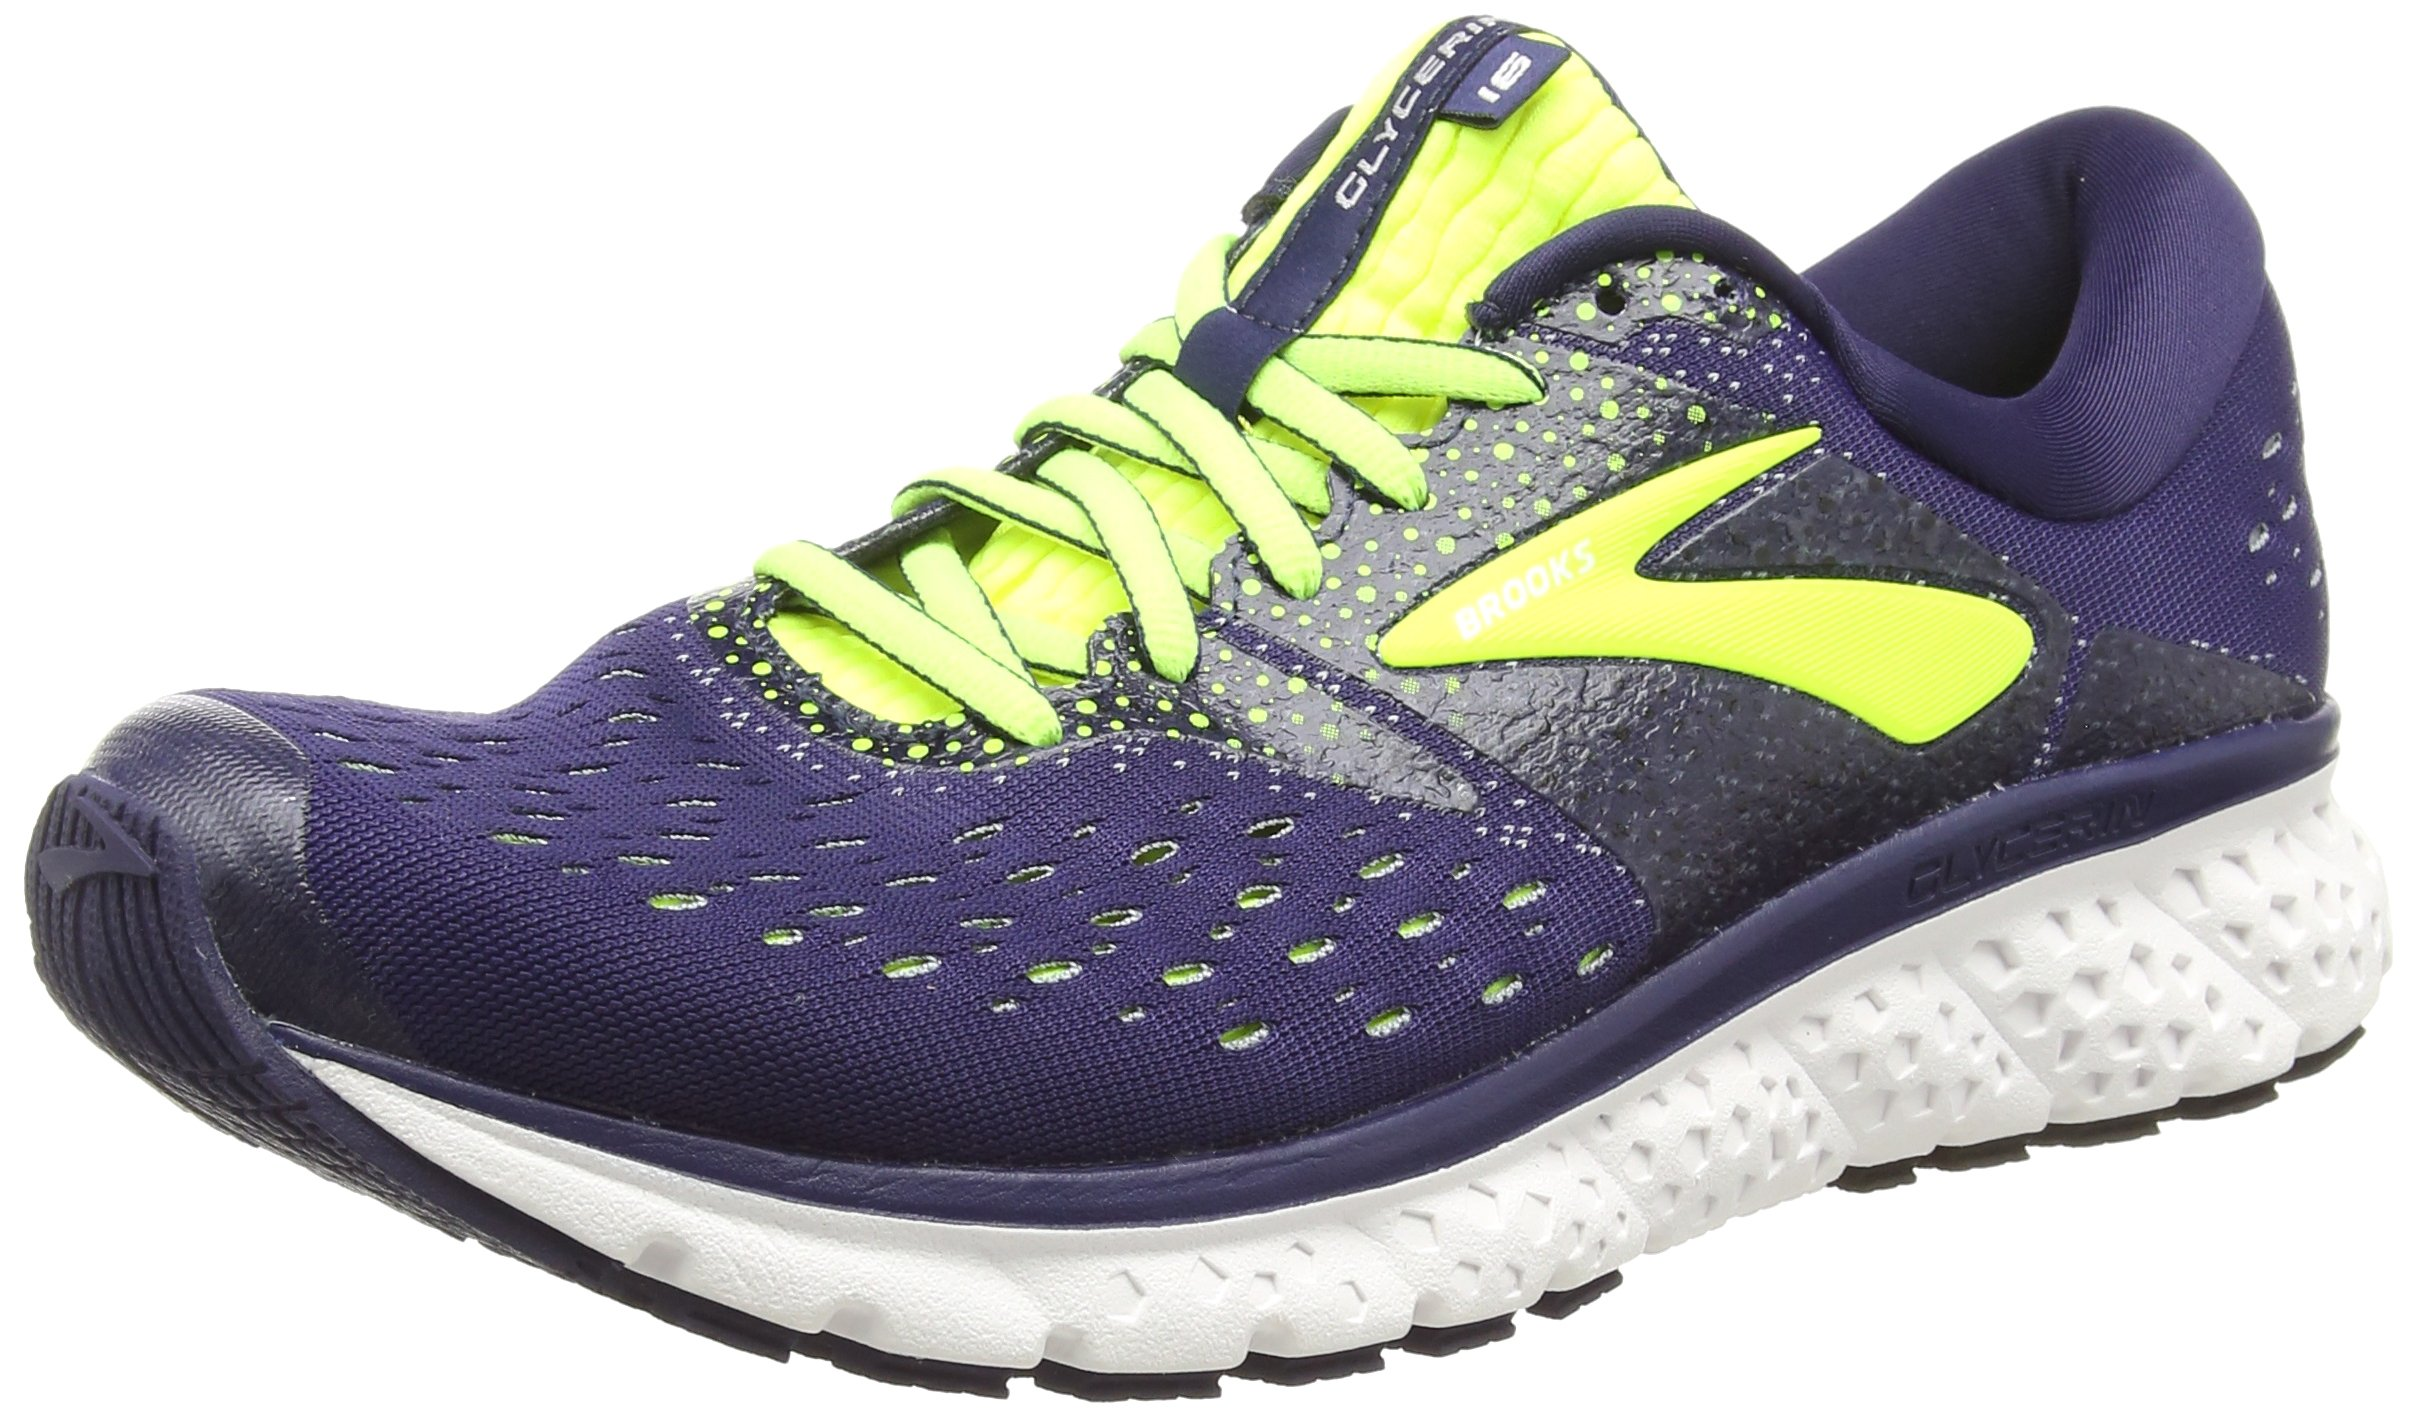 7f4bc37d45f37 Galleon - Brooks Mens Glycerin 16 - Navy Nightlife Grey - D - 8.5